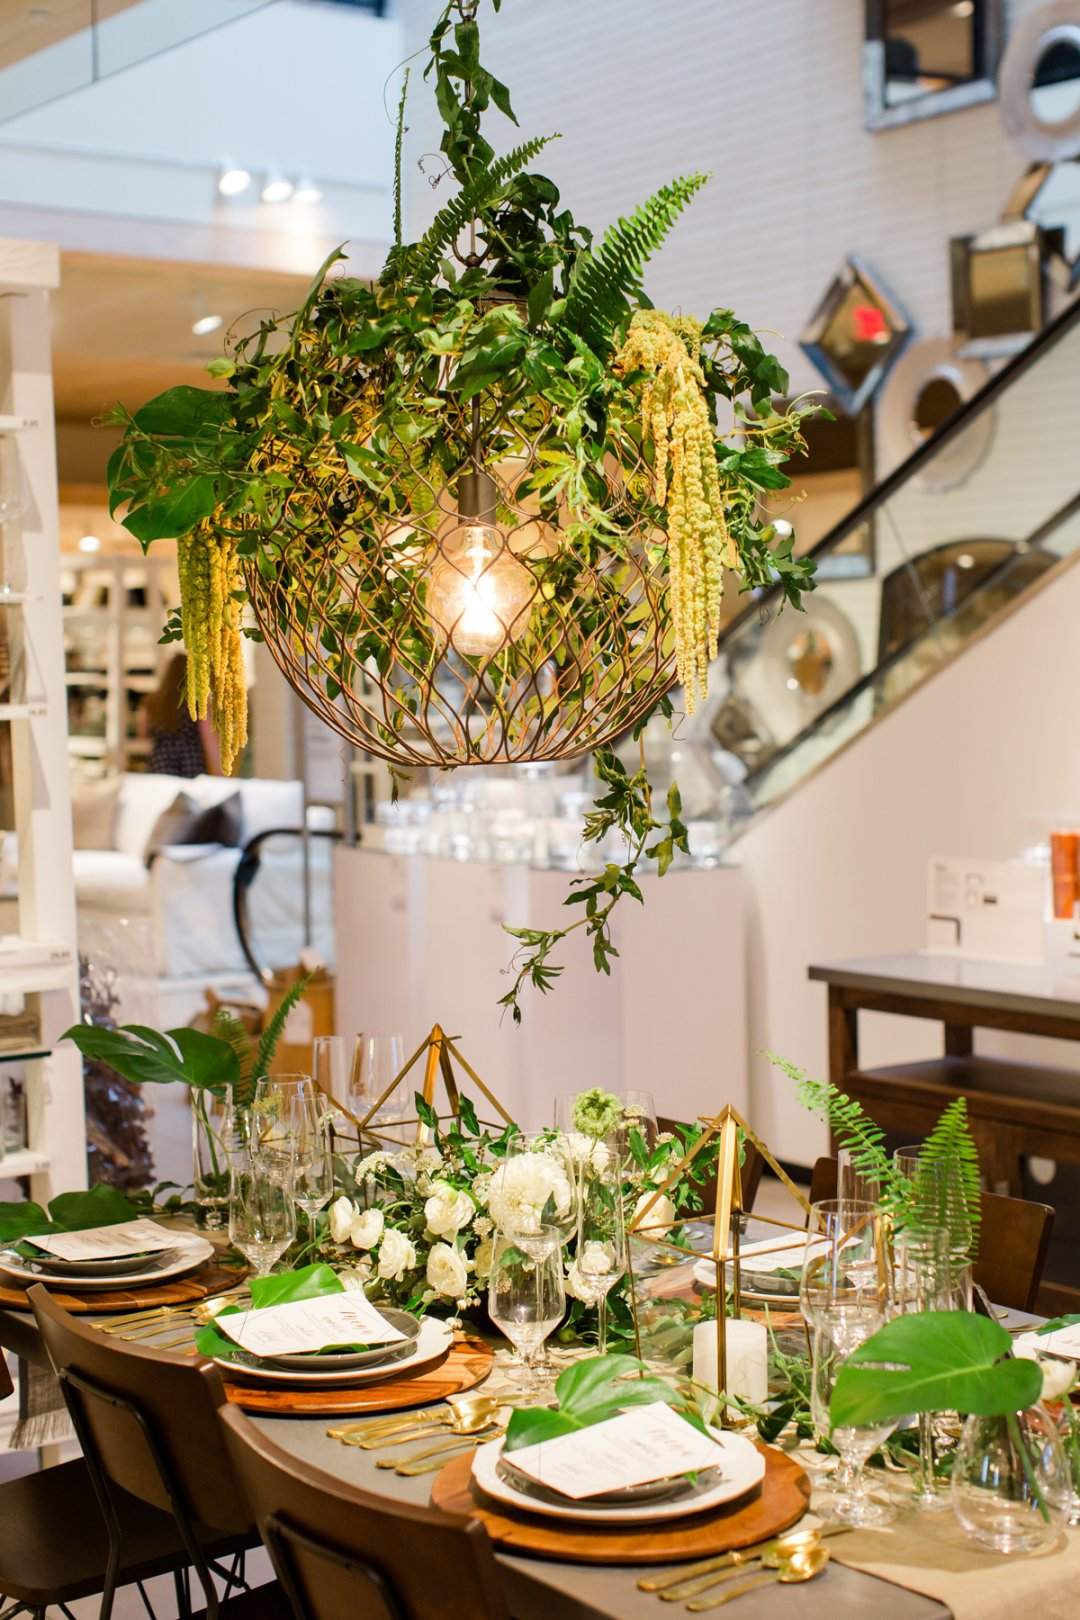 Chandelier with greenery over set table